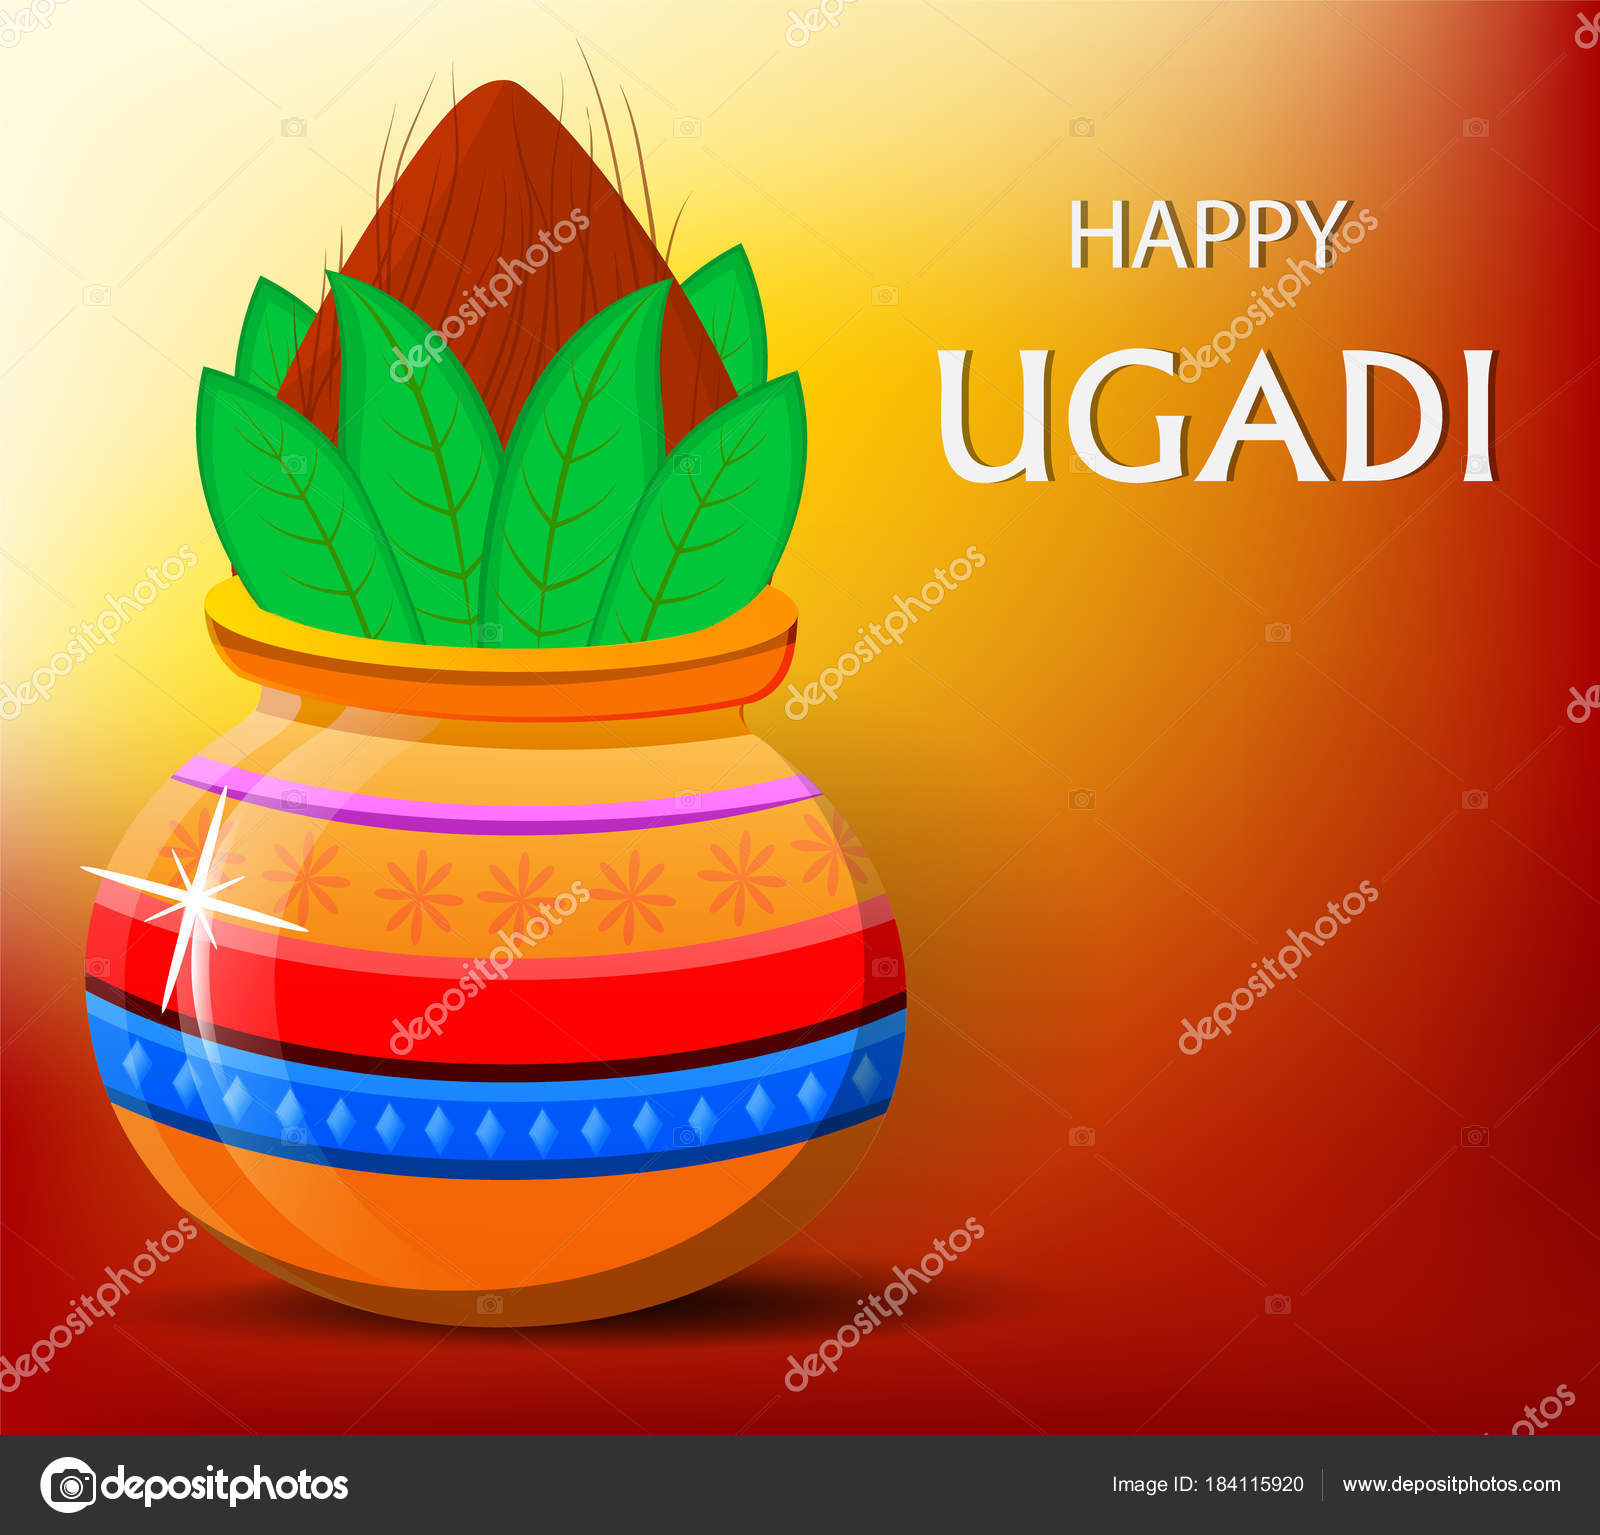 Happy ugadi greeting card with beautiful decorated kalash stock happy ugadi greeting card with beautiful decorated kalash stock vector kristyandbryce Images